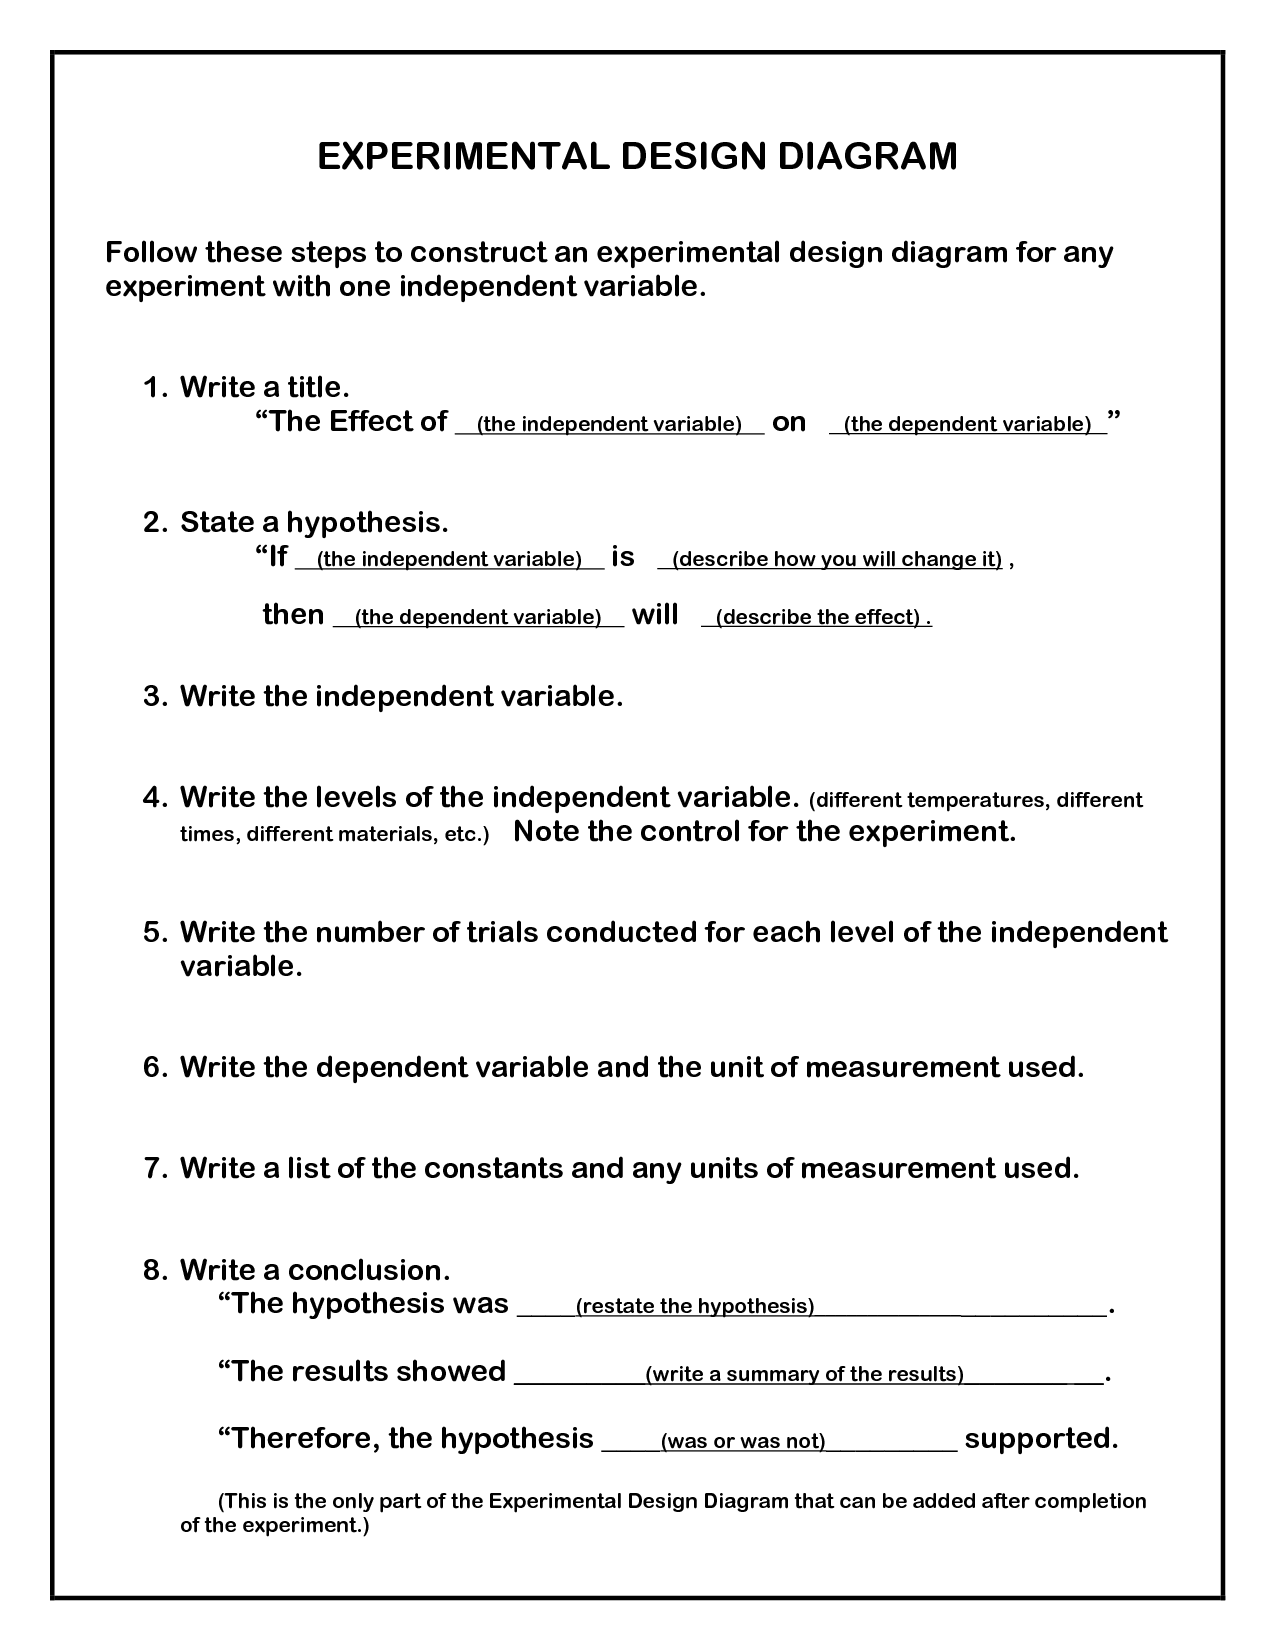 Worksheet Experimental Design